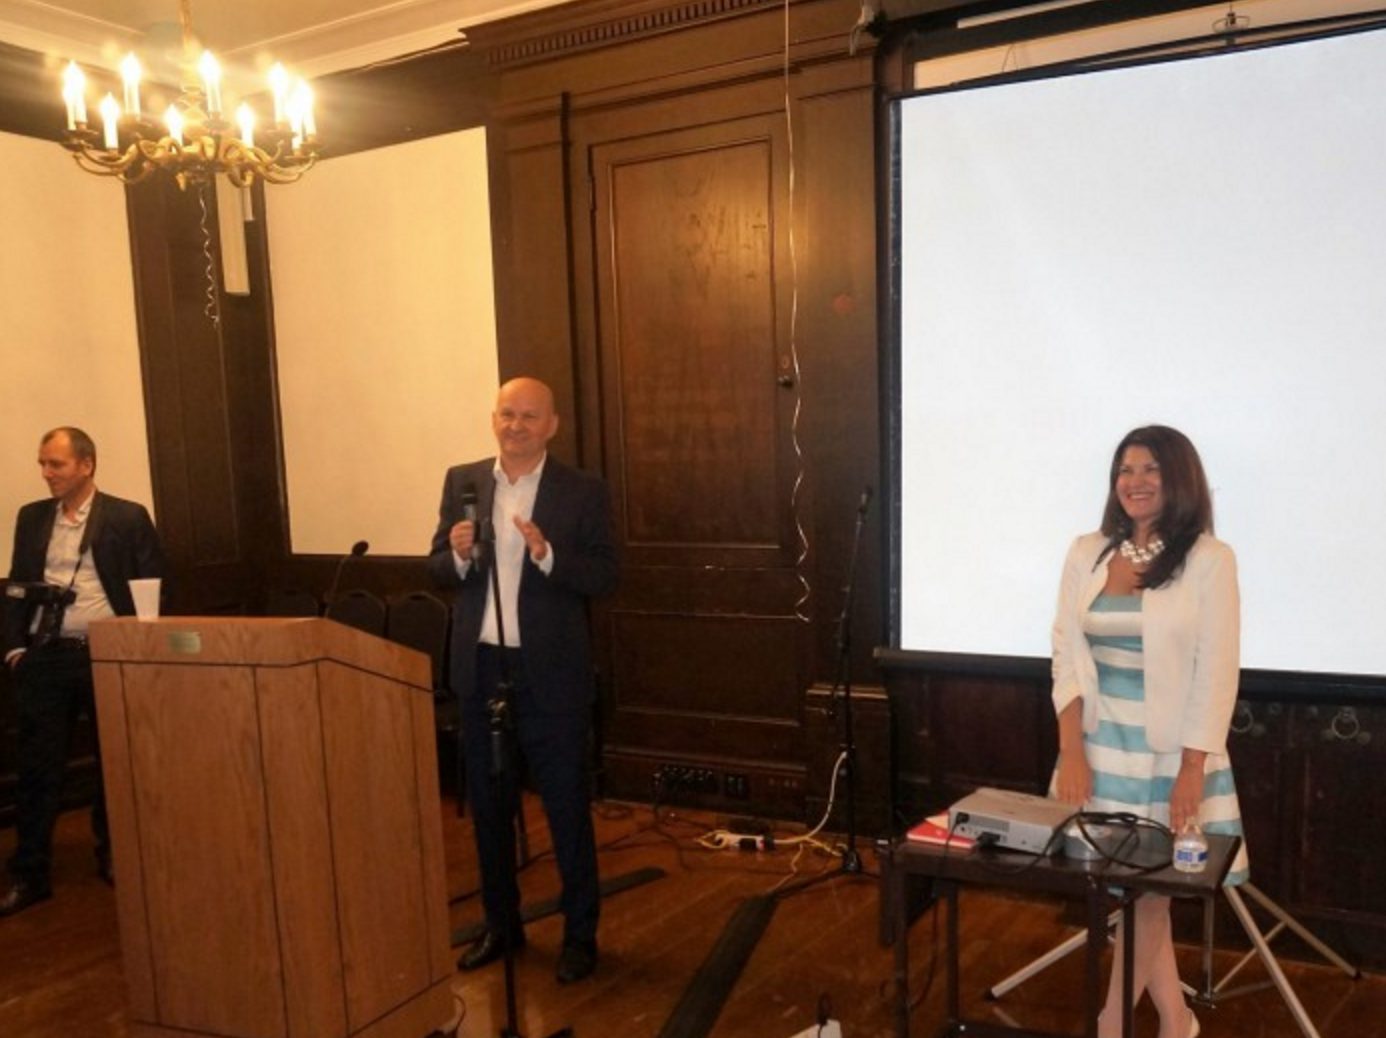 From left to right: Stjepan Orešković Ph.D., Professor of Public Health at the University of Zagreb School of Medicine, Zagreb, Croatia, EU. & Ana Lita Ph.D., Global Bioethics Initiative